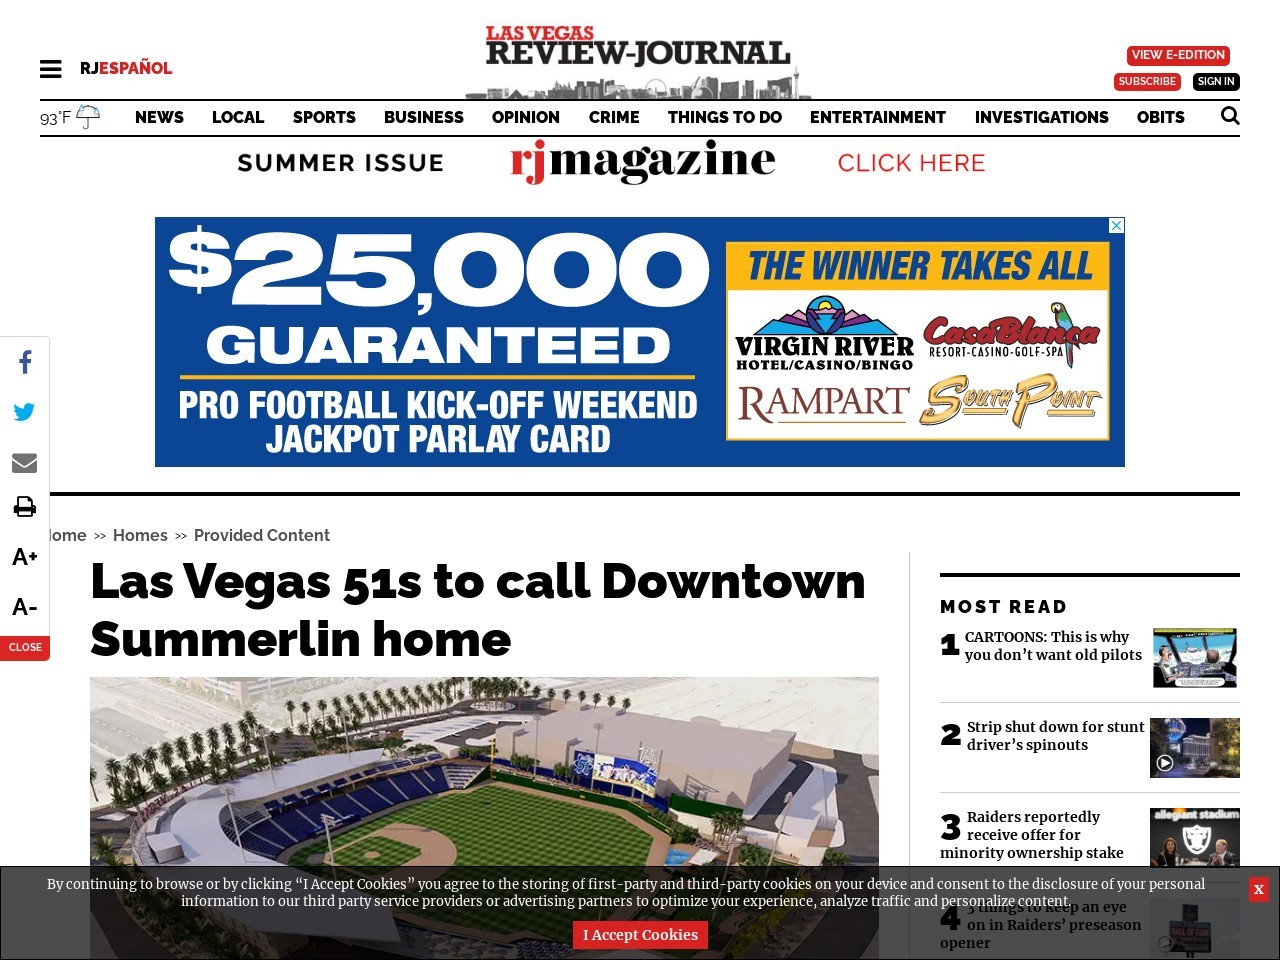 Las Vegas 51s to call Downtown Summerlin home